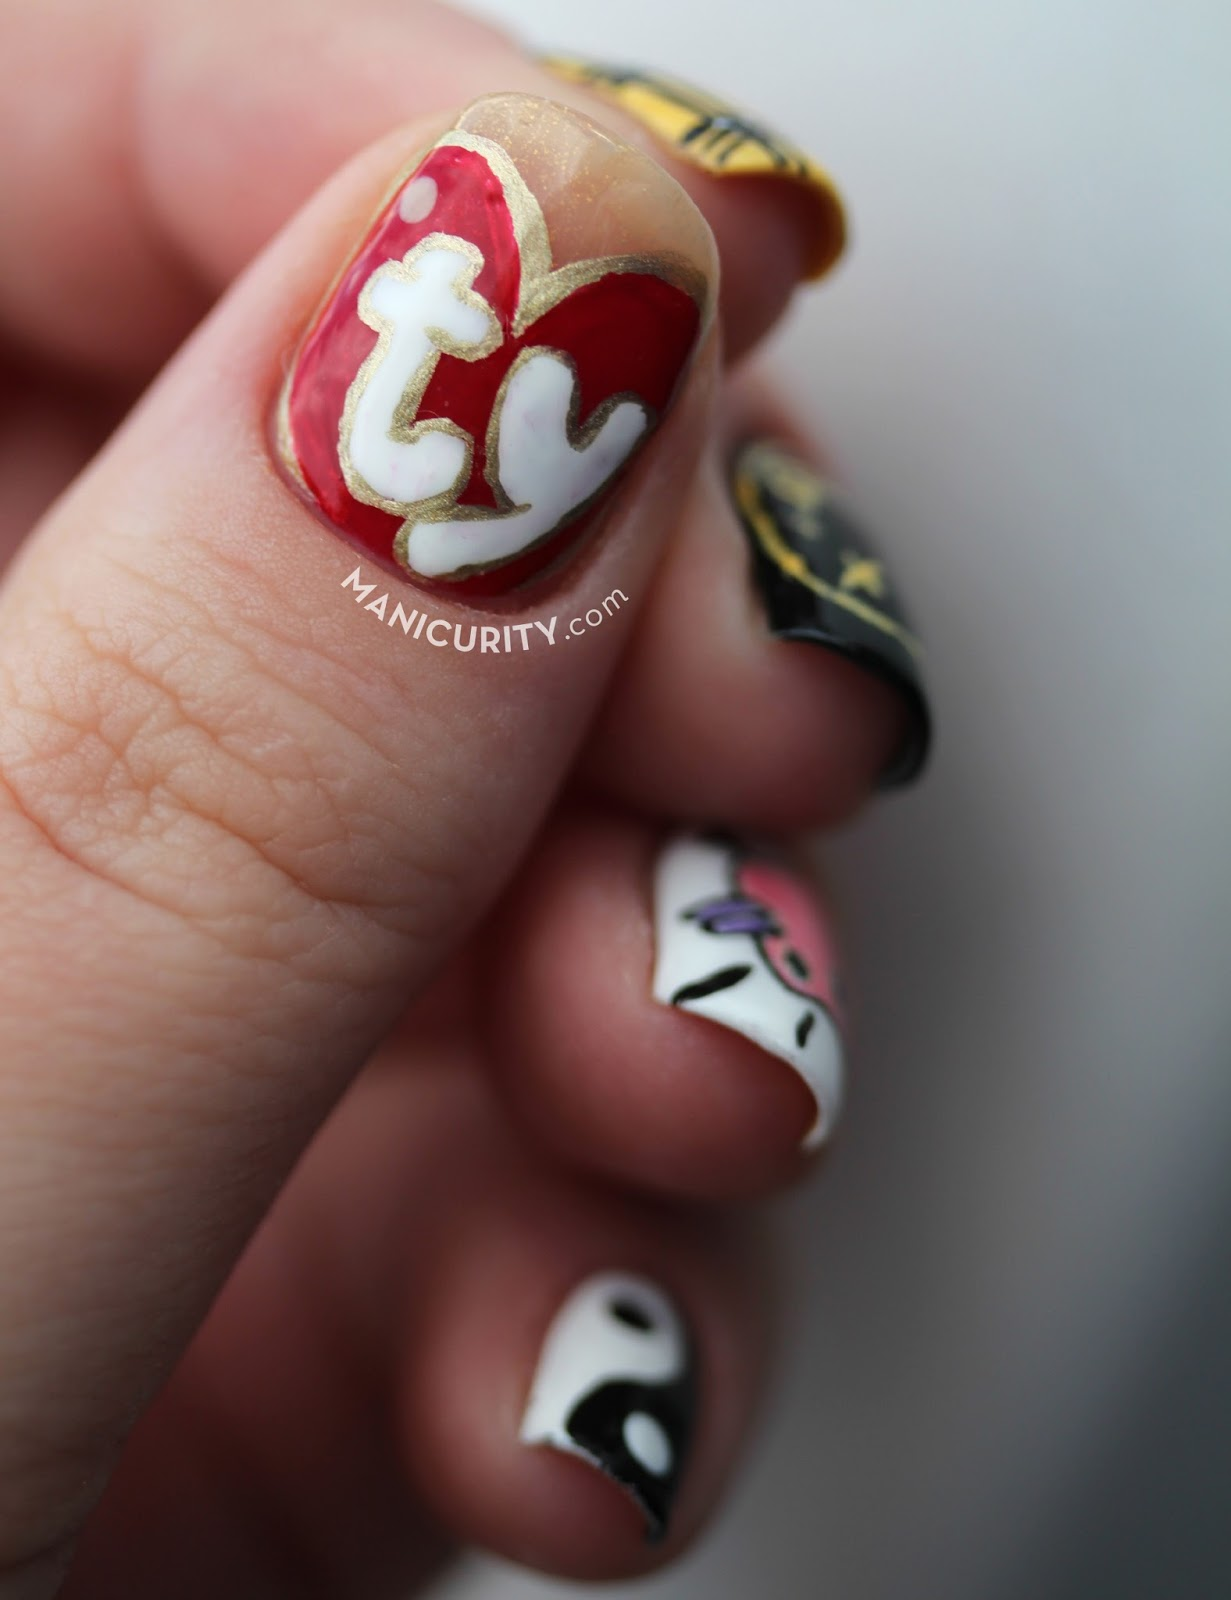 The Digit-al Dozen: Whatever! This 90s Freehand Nail Art Skittle Set is DA BOMB! featuring yin-yang, Tamagotchi, Nirvana, Clueless, and Ty Beanie Babies   Manicurity.com